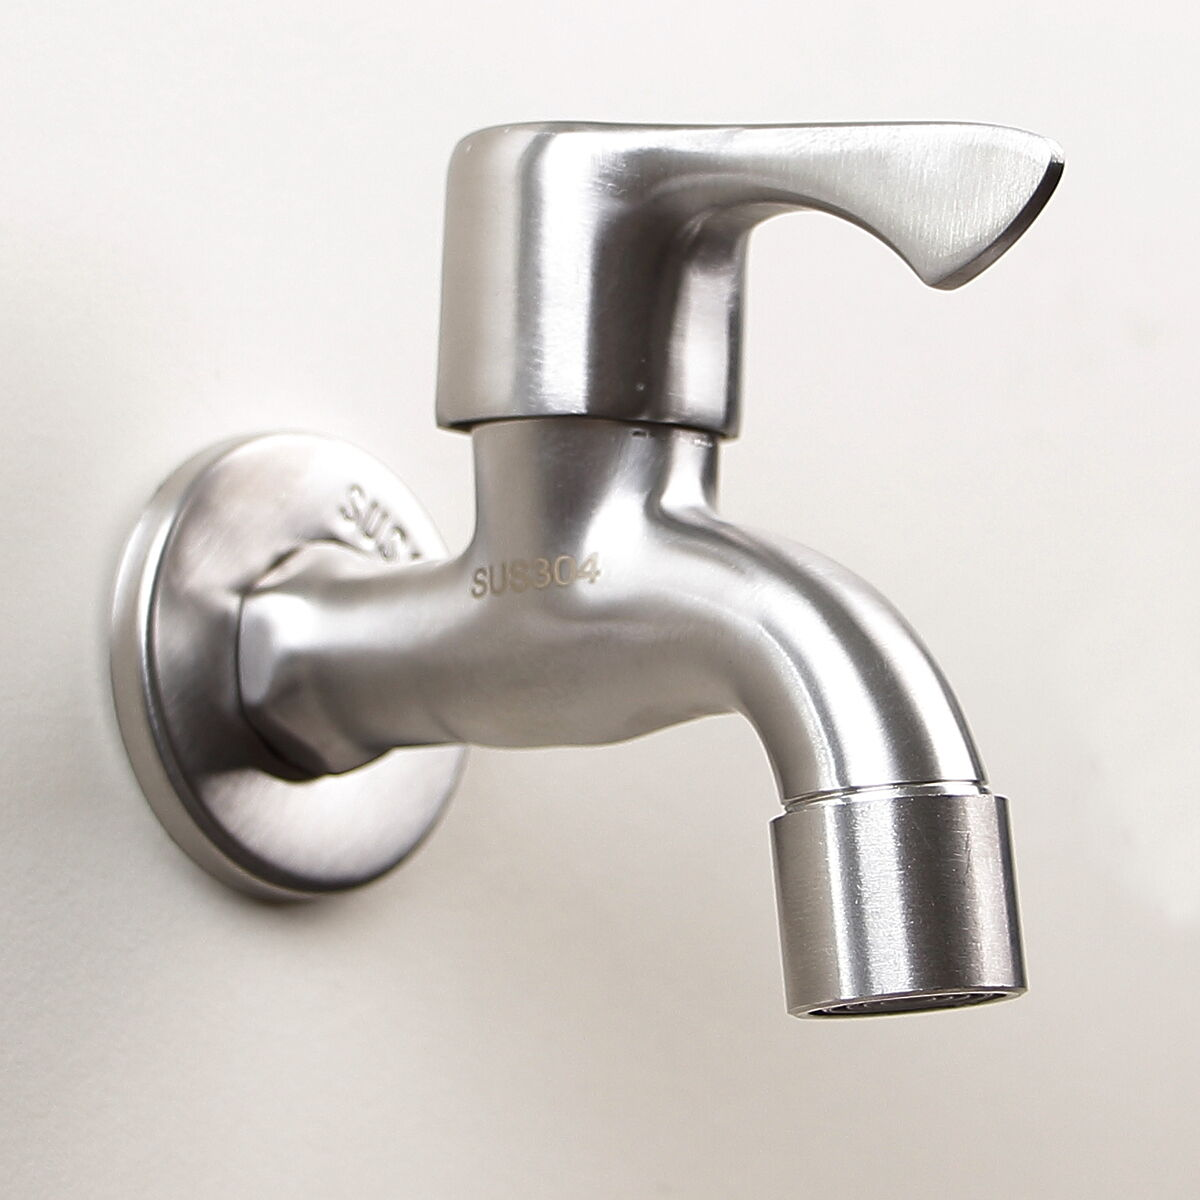 Tap From Cast Stainless Steel 304 Outlet Tap 1/2